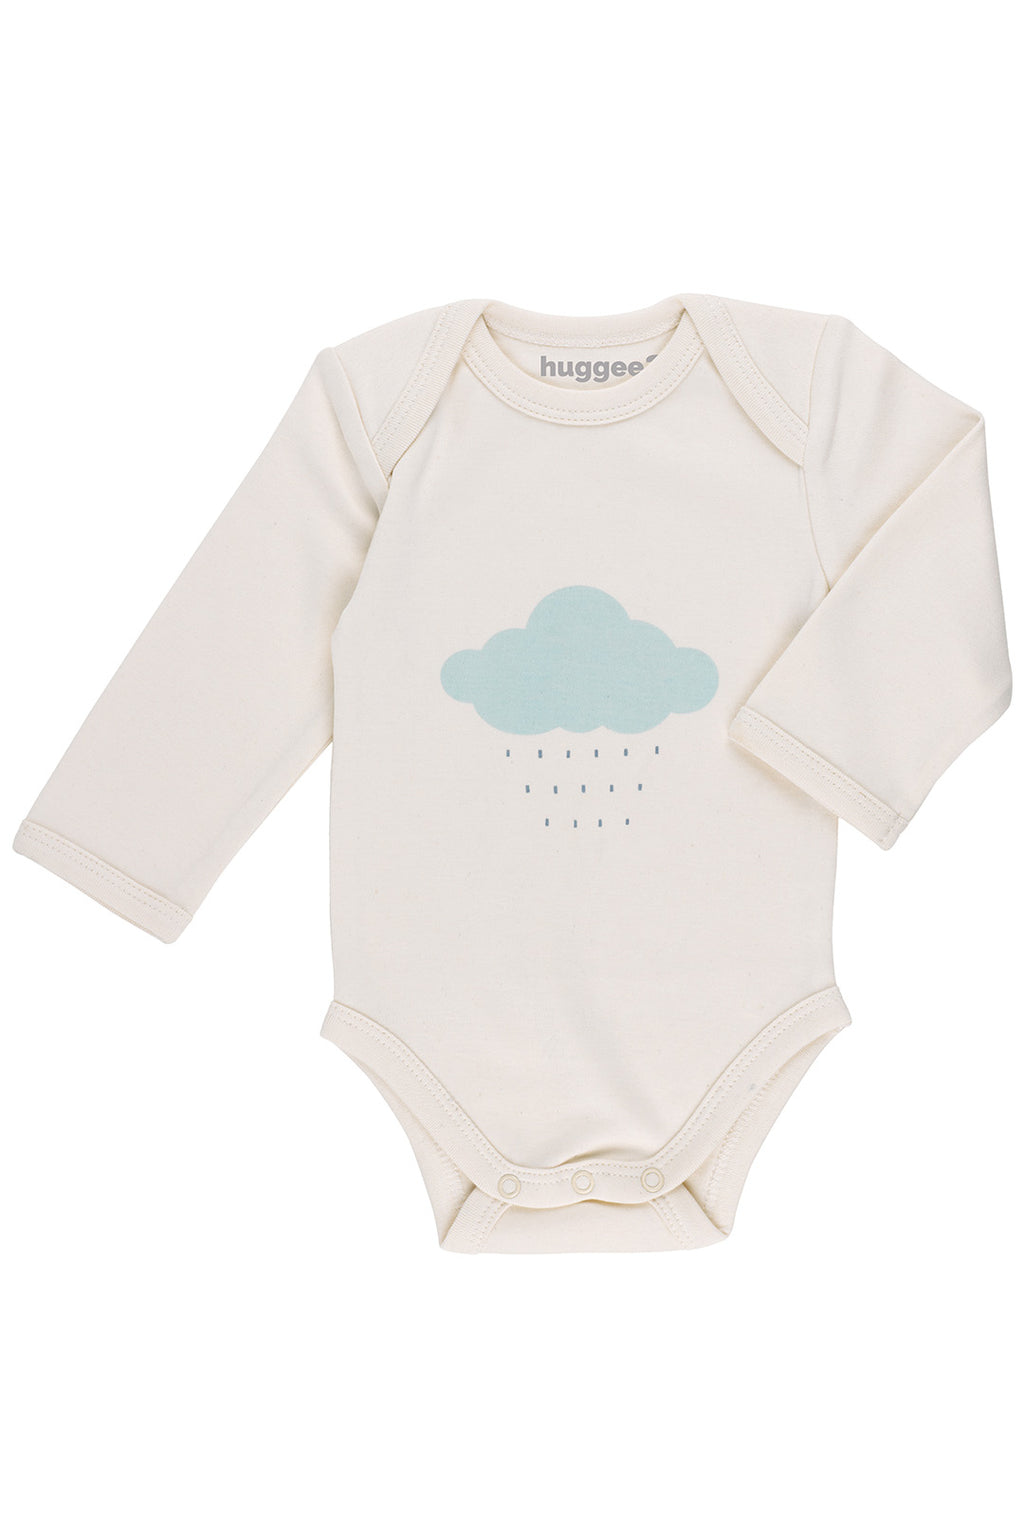 One Cloud Lap Shoulder Body LS